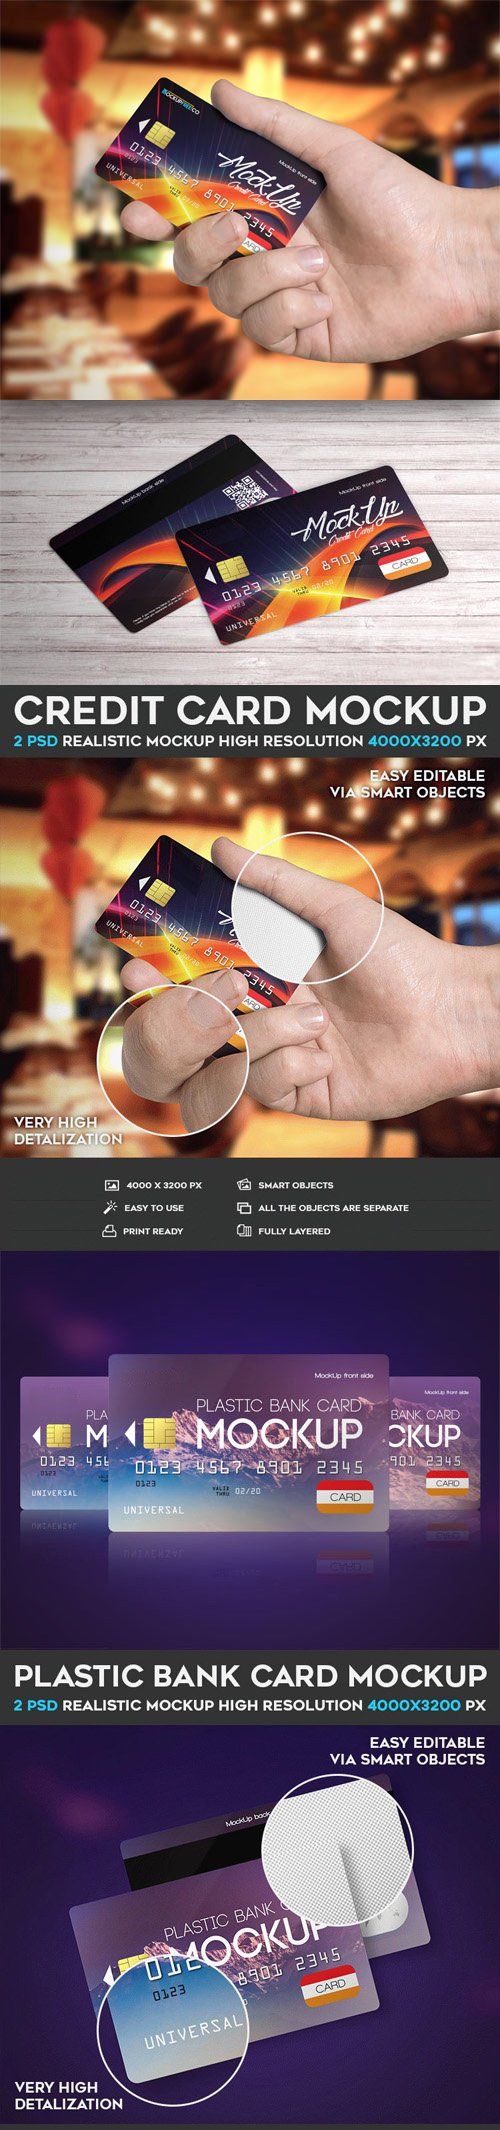 Credit Card - 4 PSD Mockups Collection